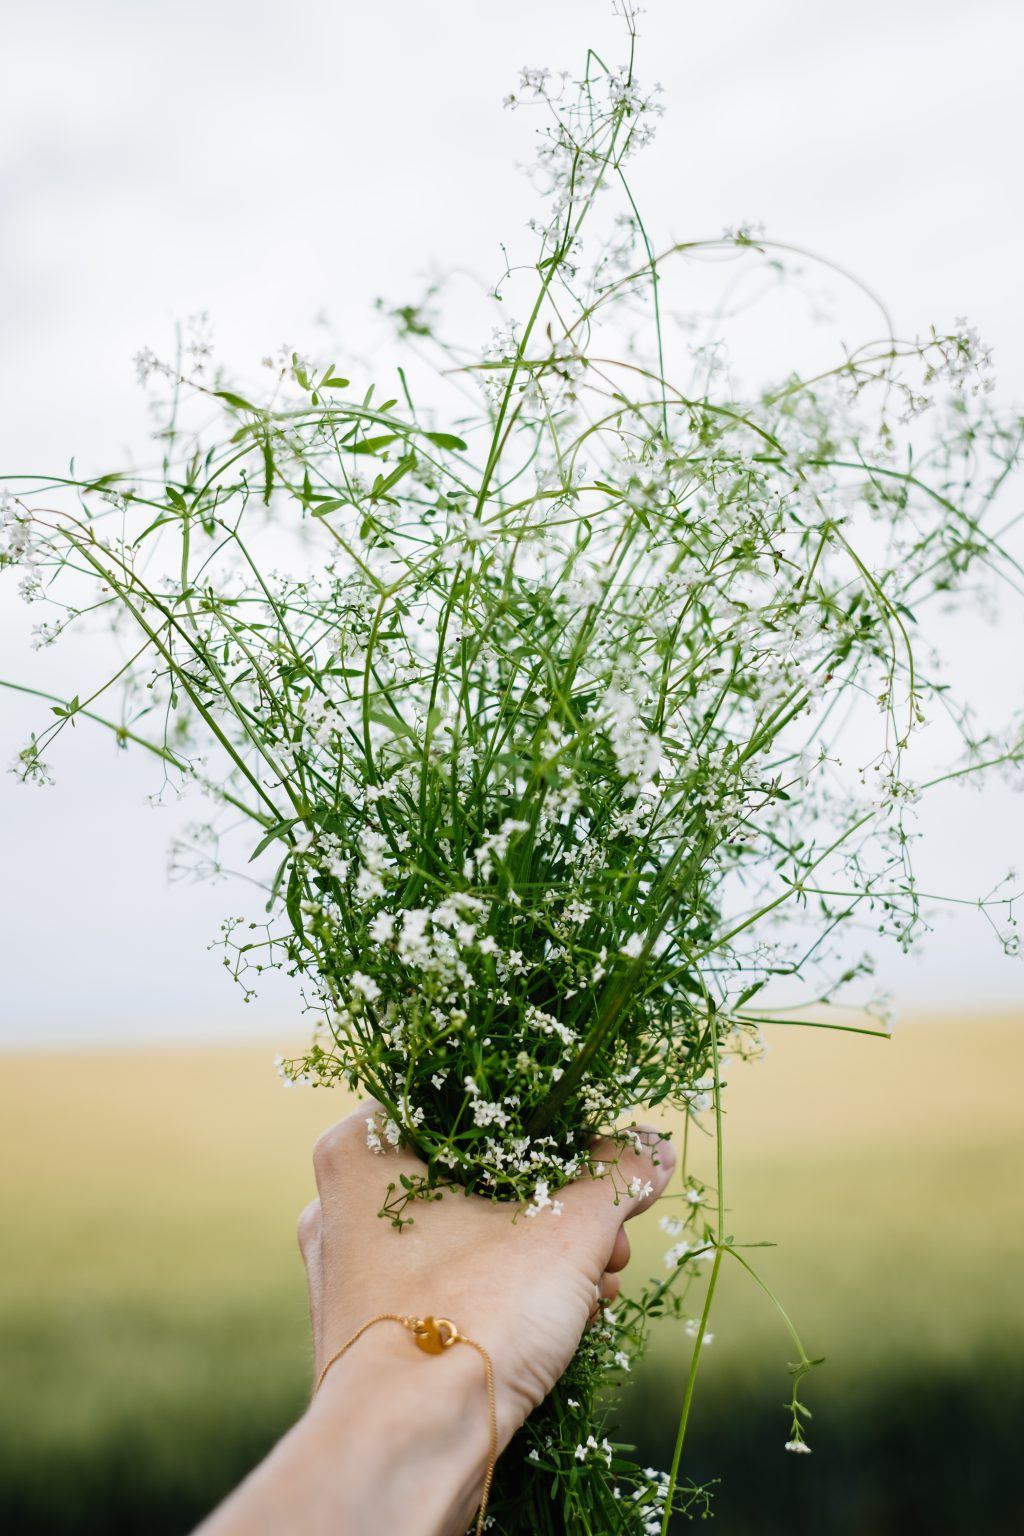 Wild flowers bouquet in a female hand 5 - free stock photo